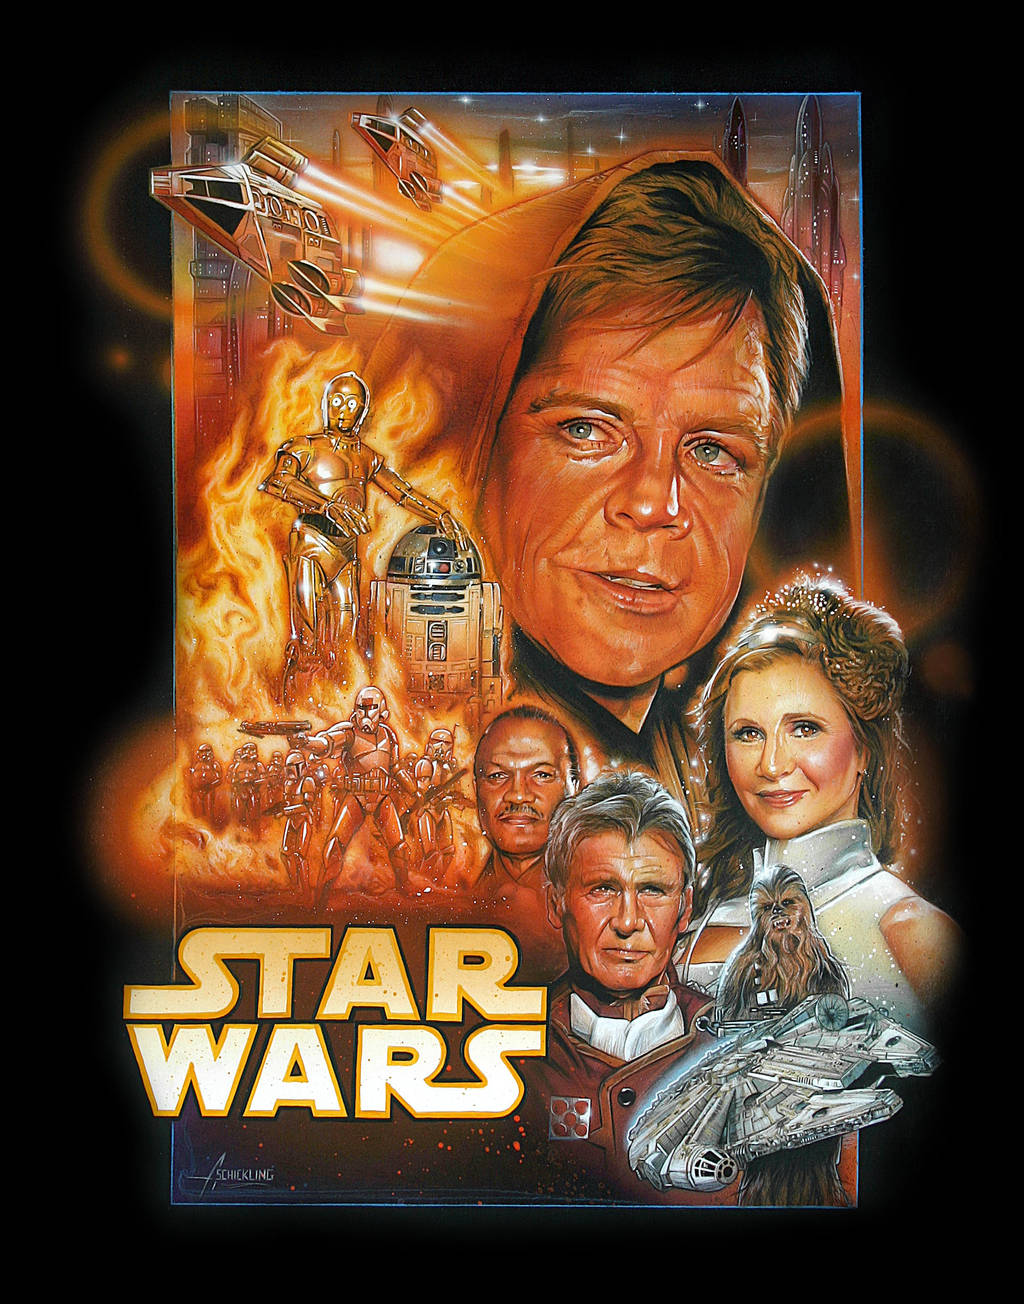 STAR WARS Episode 7 POSTER by rampantimaginationA